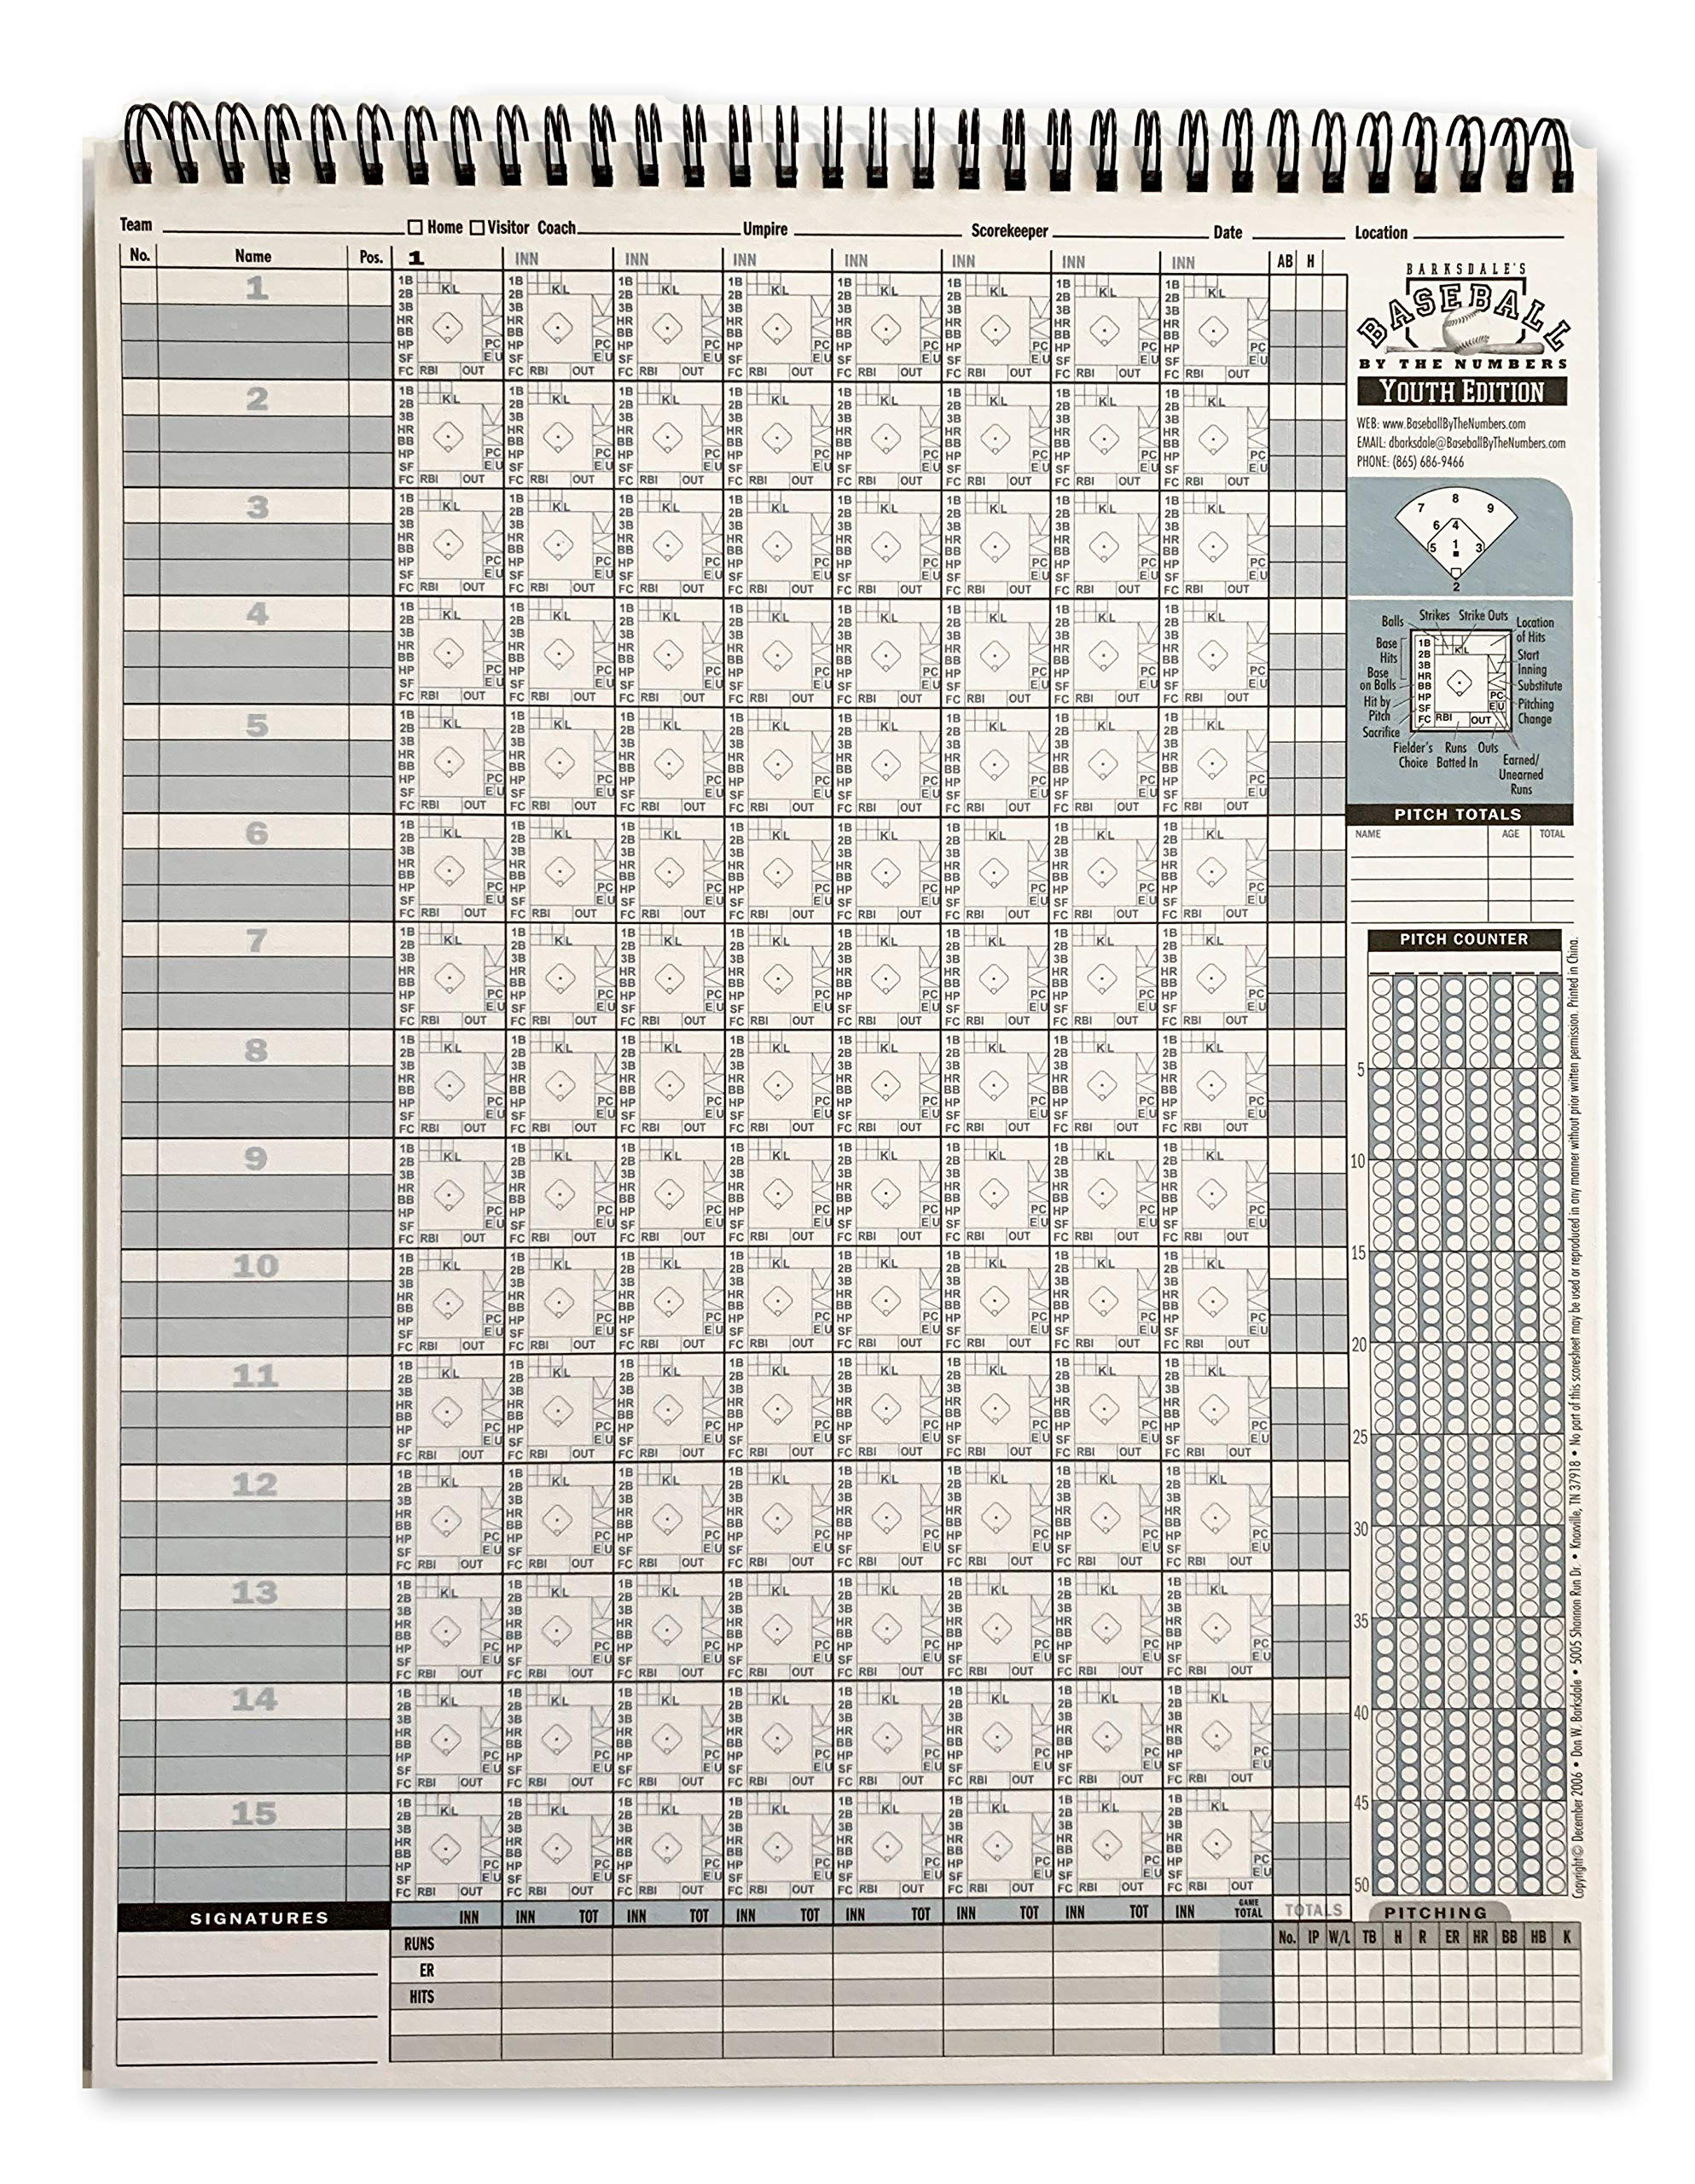 Barksdale Baseball By The Numbers Youth Edition Pitch Count Scorebook